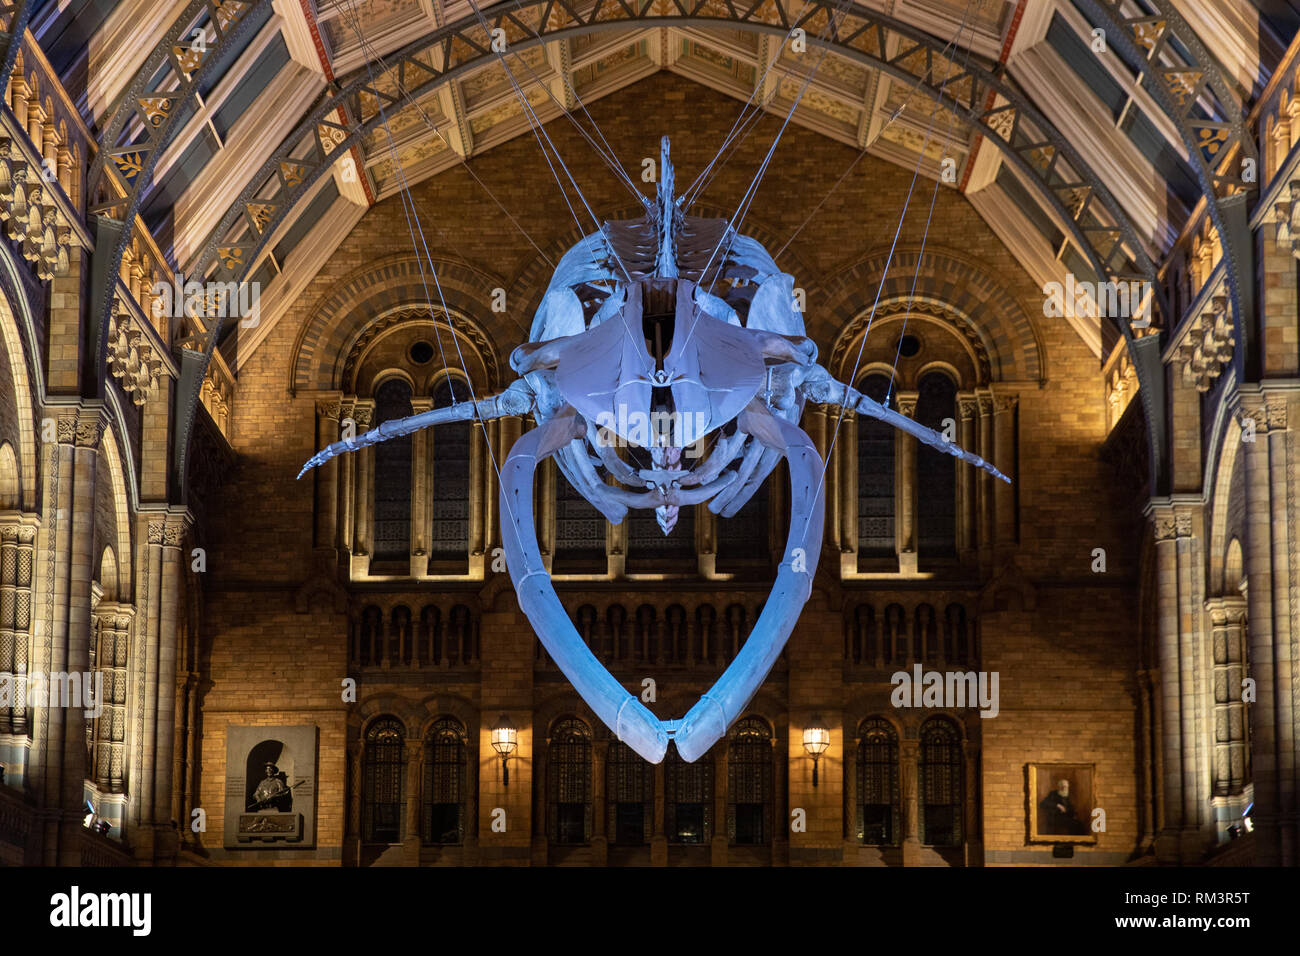 The Natural History Museum, London, Uk - Stock Image